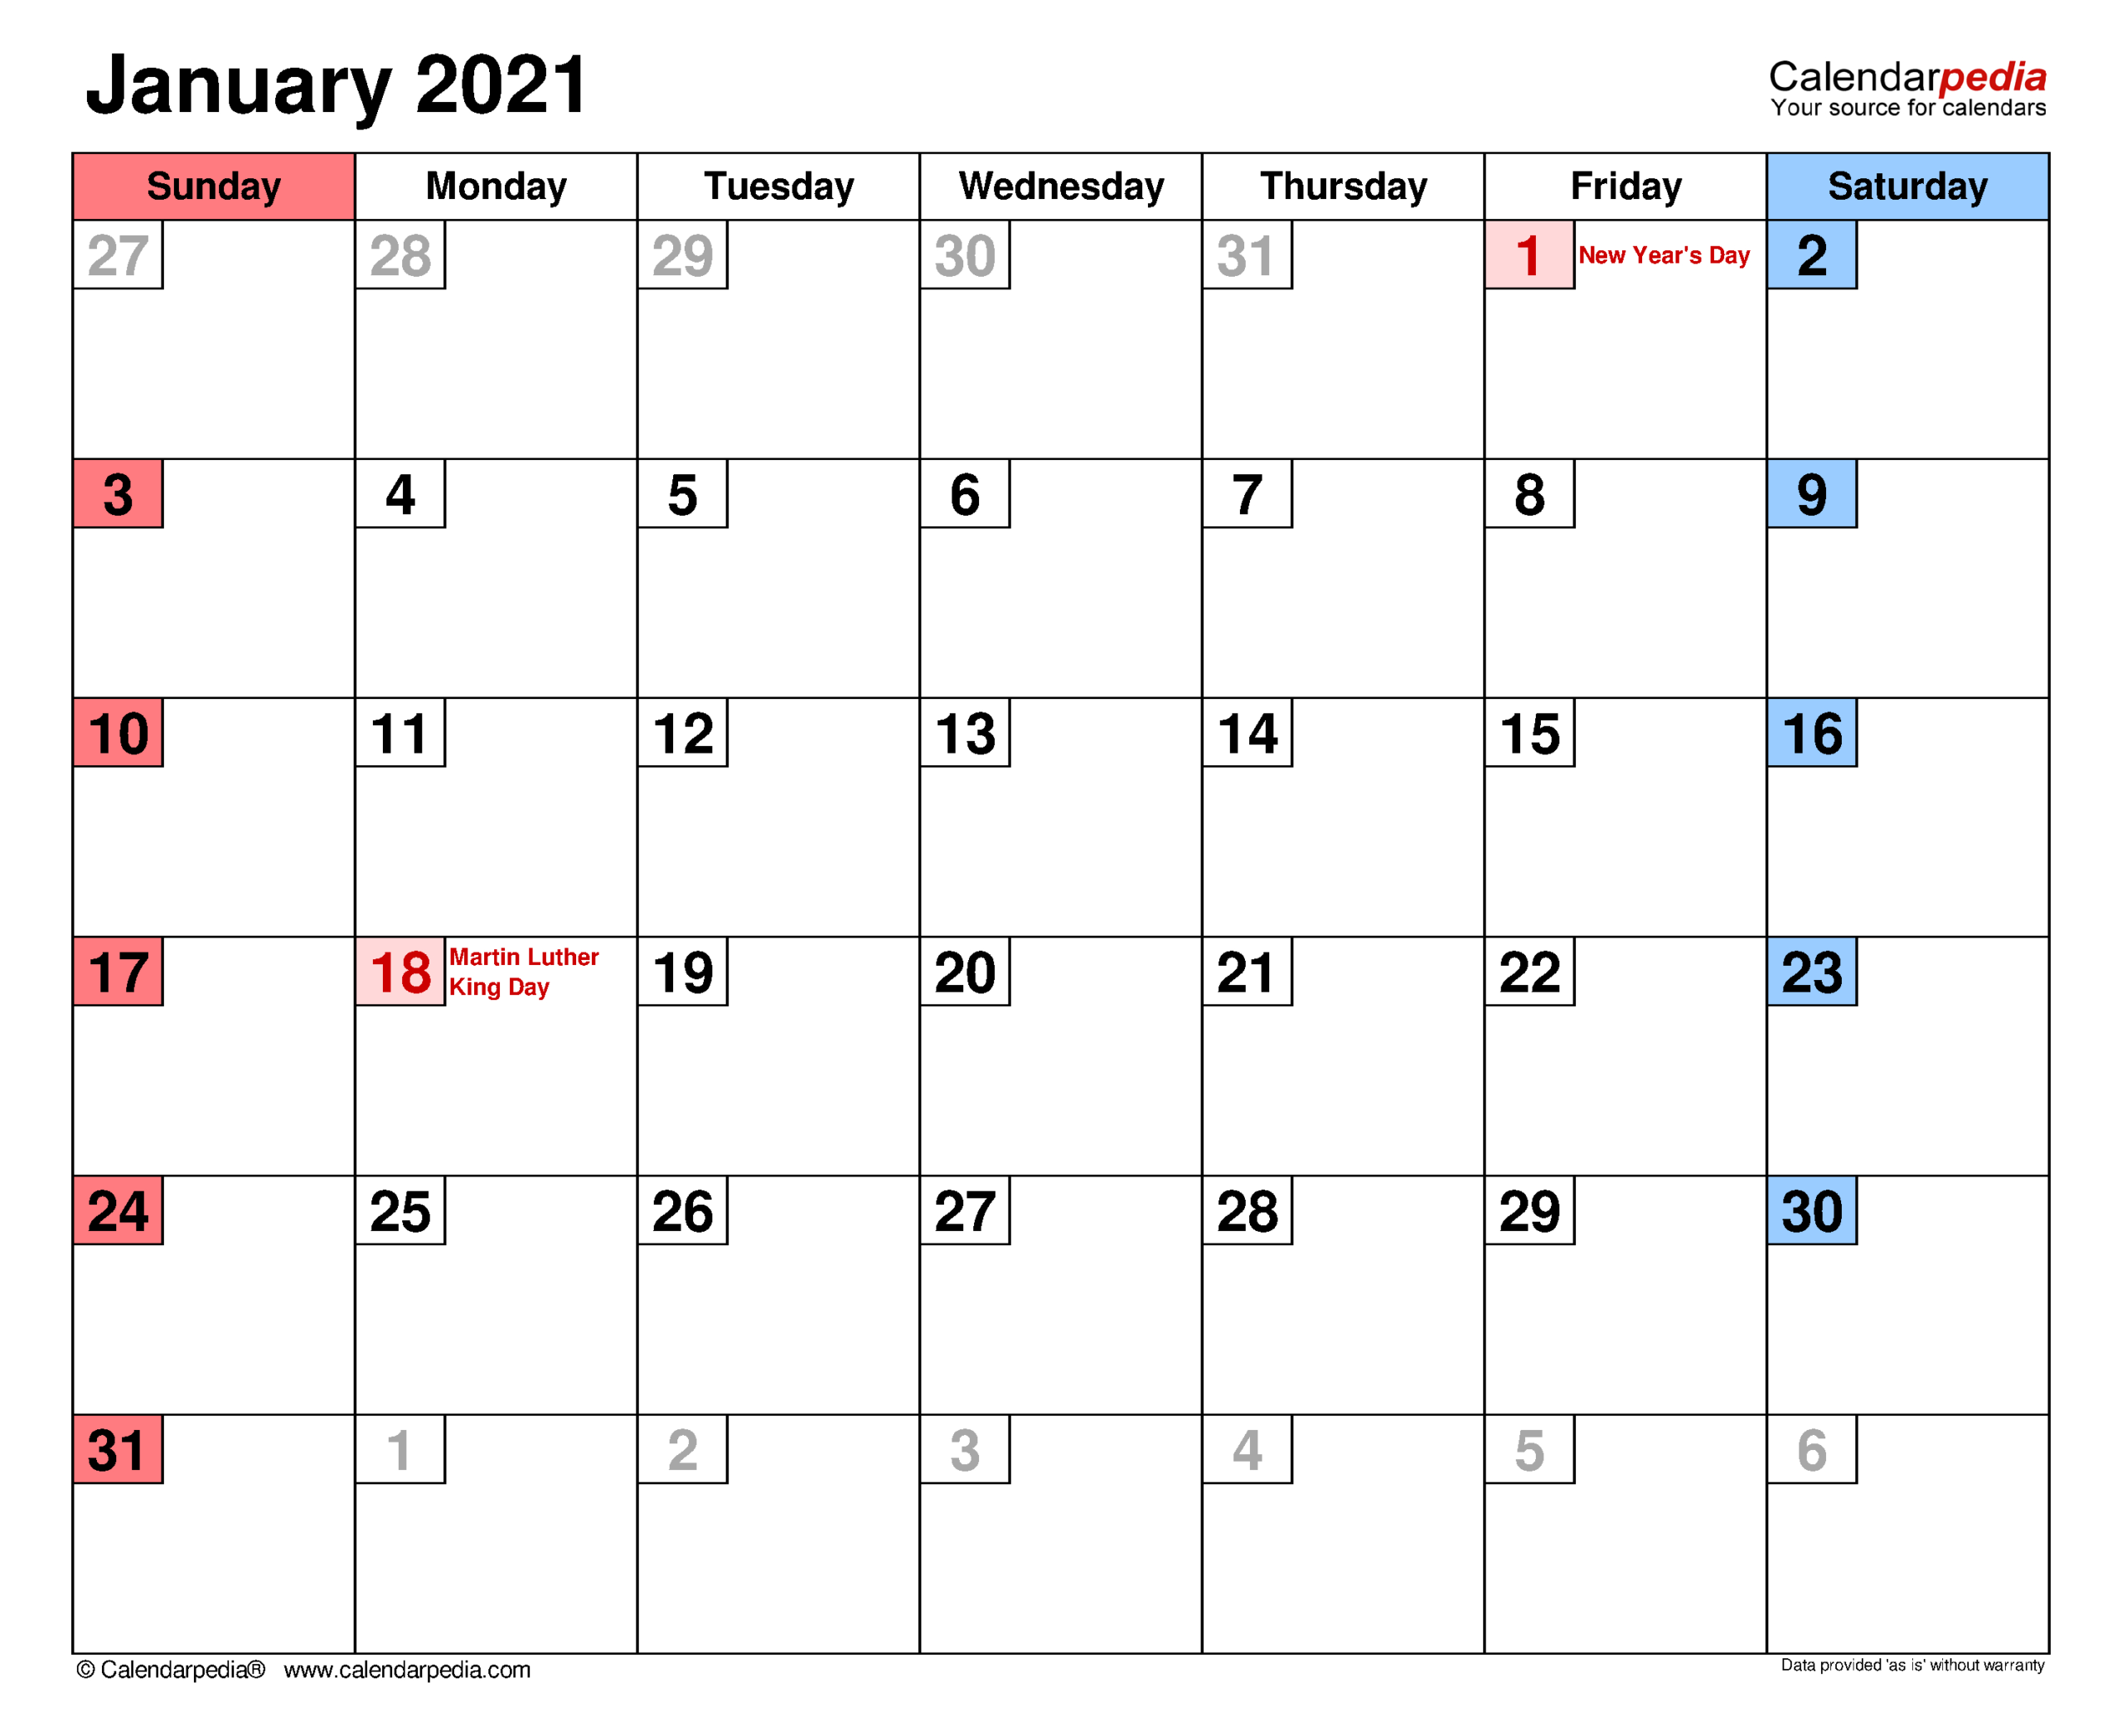 January 2021 Calendar | Templates For Word, Excel And Pdf within Shift Schedule Jan 2021